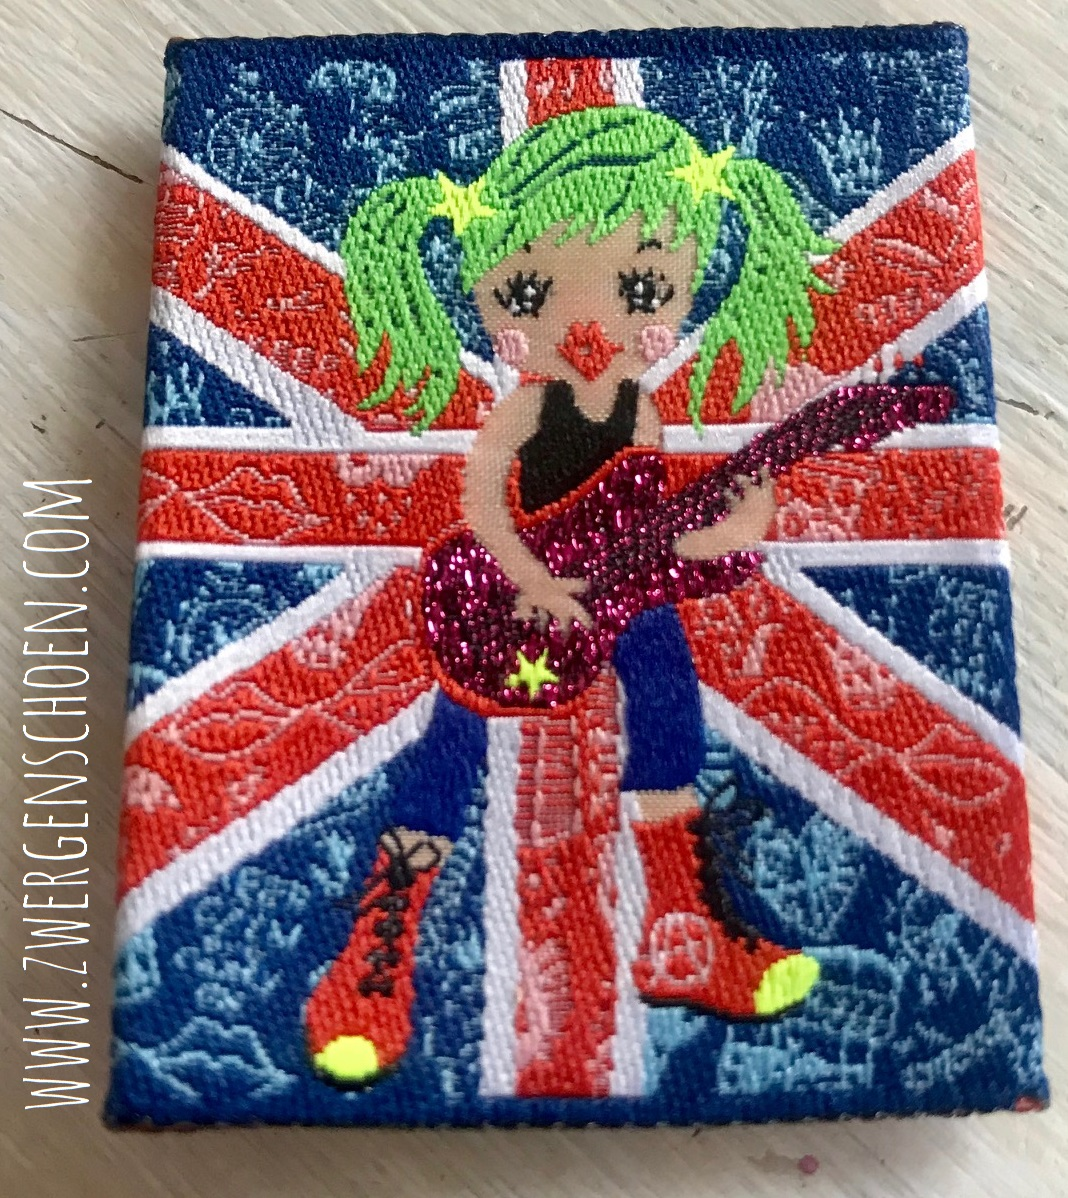 ♥BRITney on UNION JACK♥ Webetikett 5x5cm geFALZt Lurex